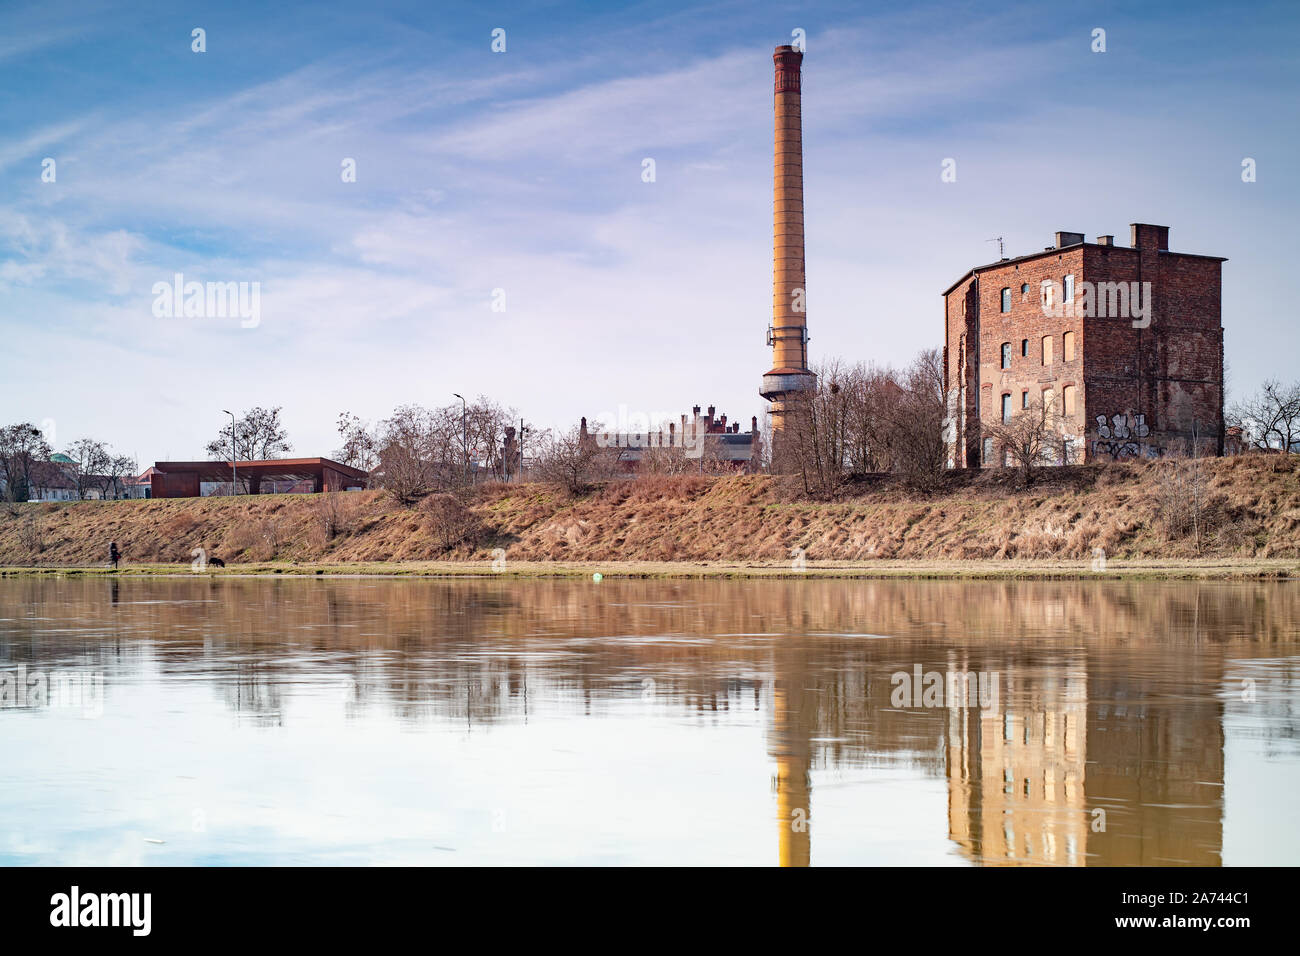 Poznan - industrial buildings and Warta river, spring. Poland Stock Photo